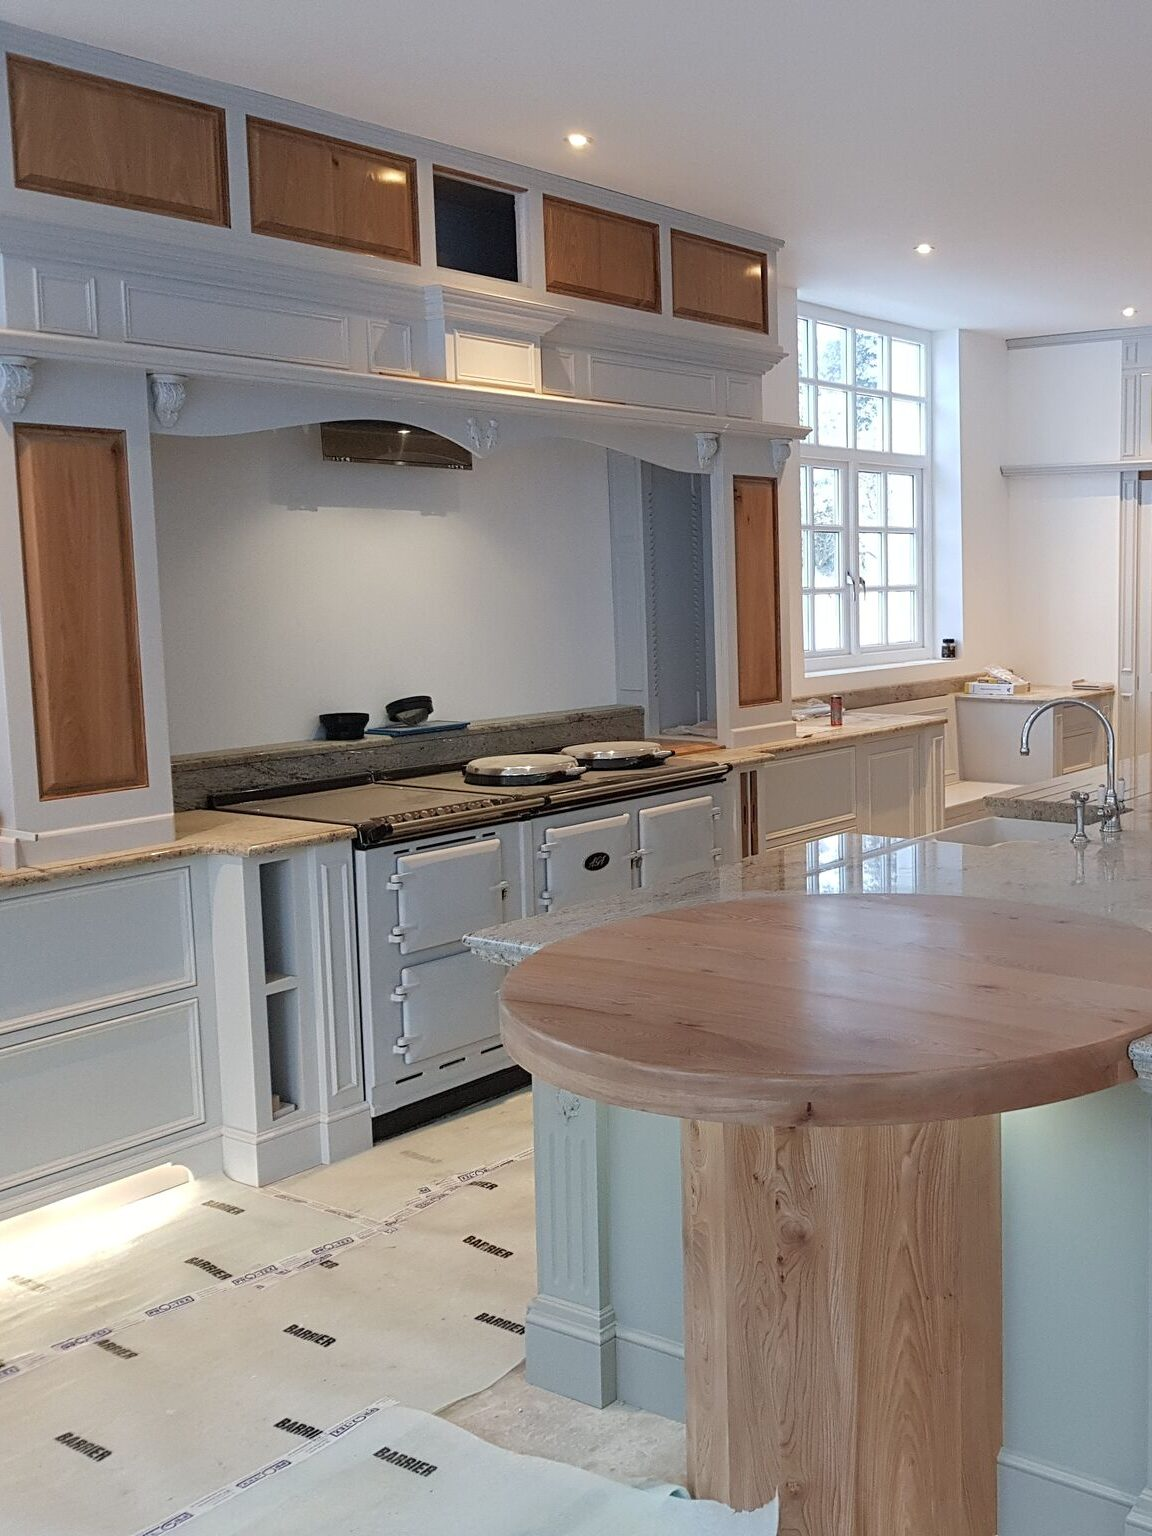 Fitted kitchen Architectural Joinery